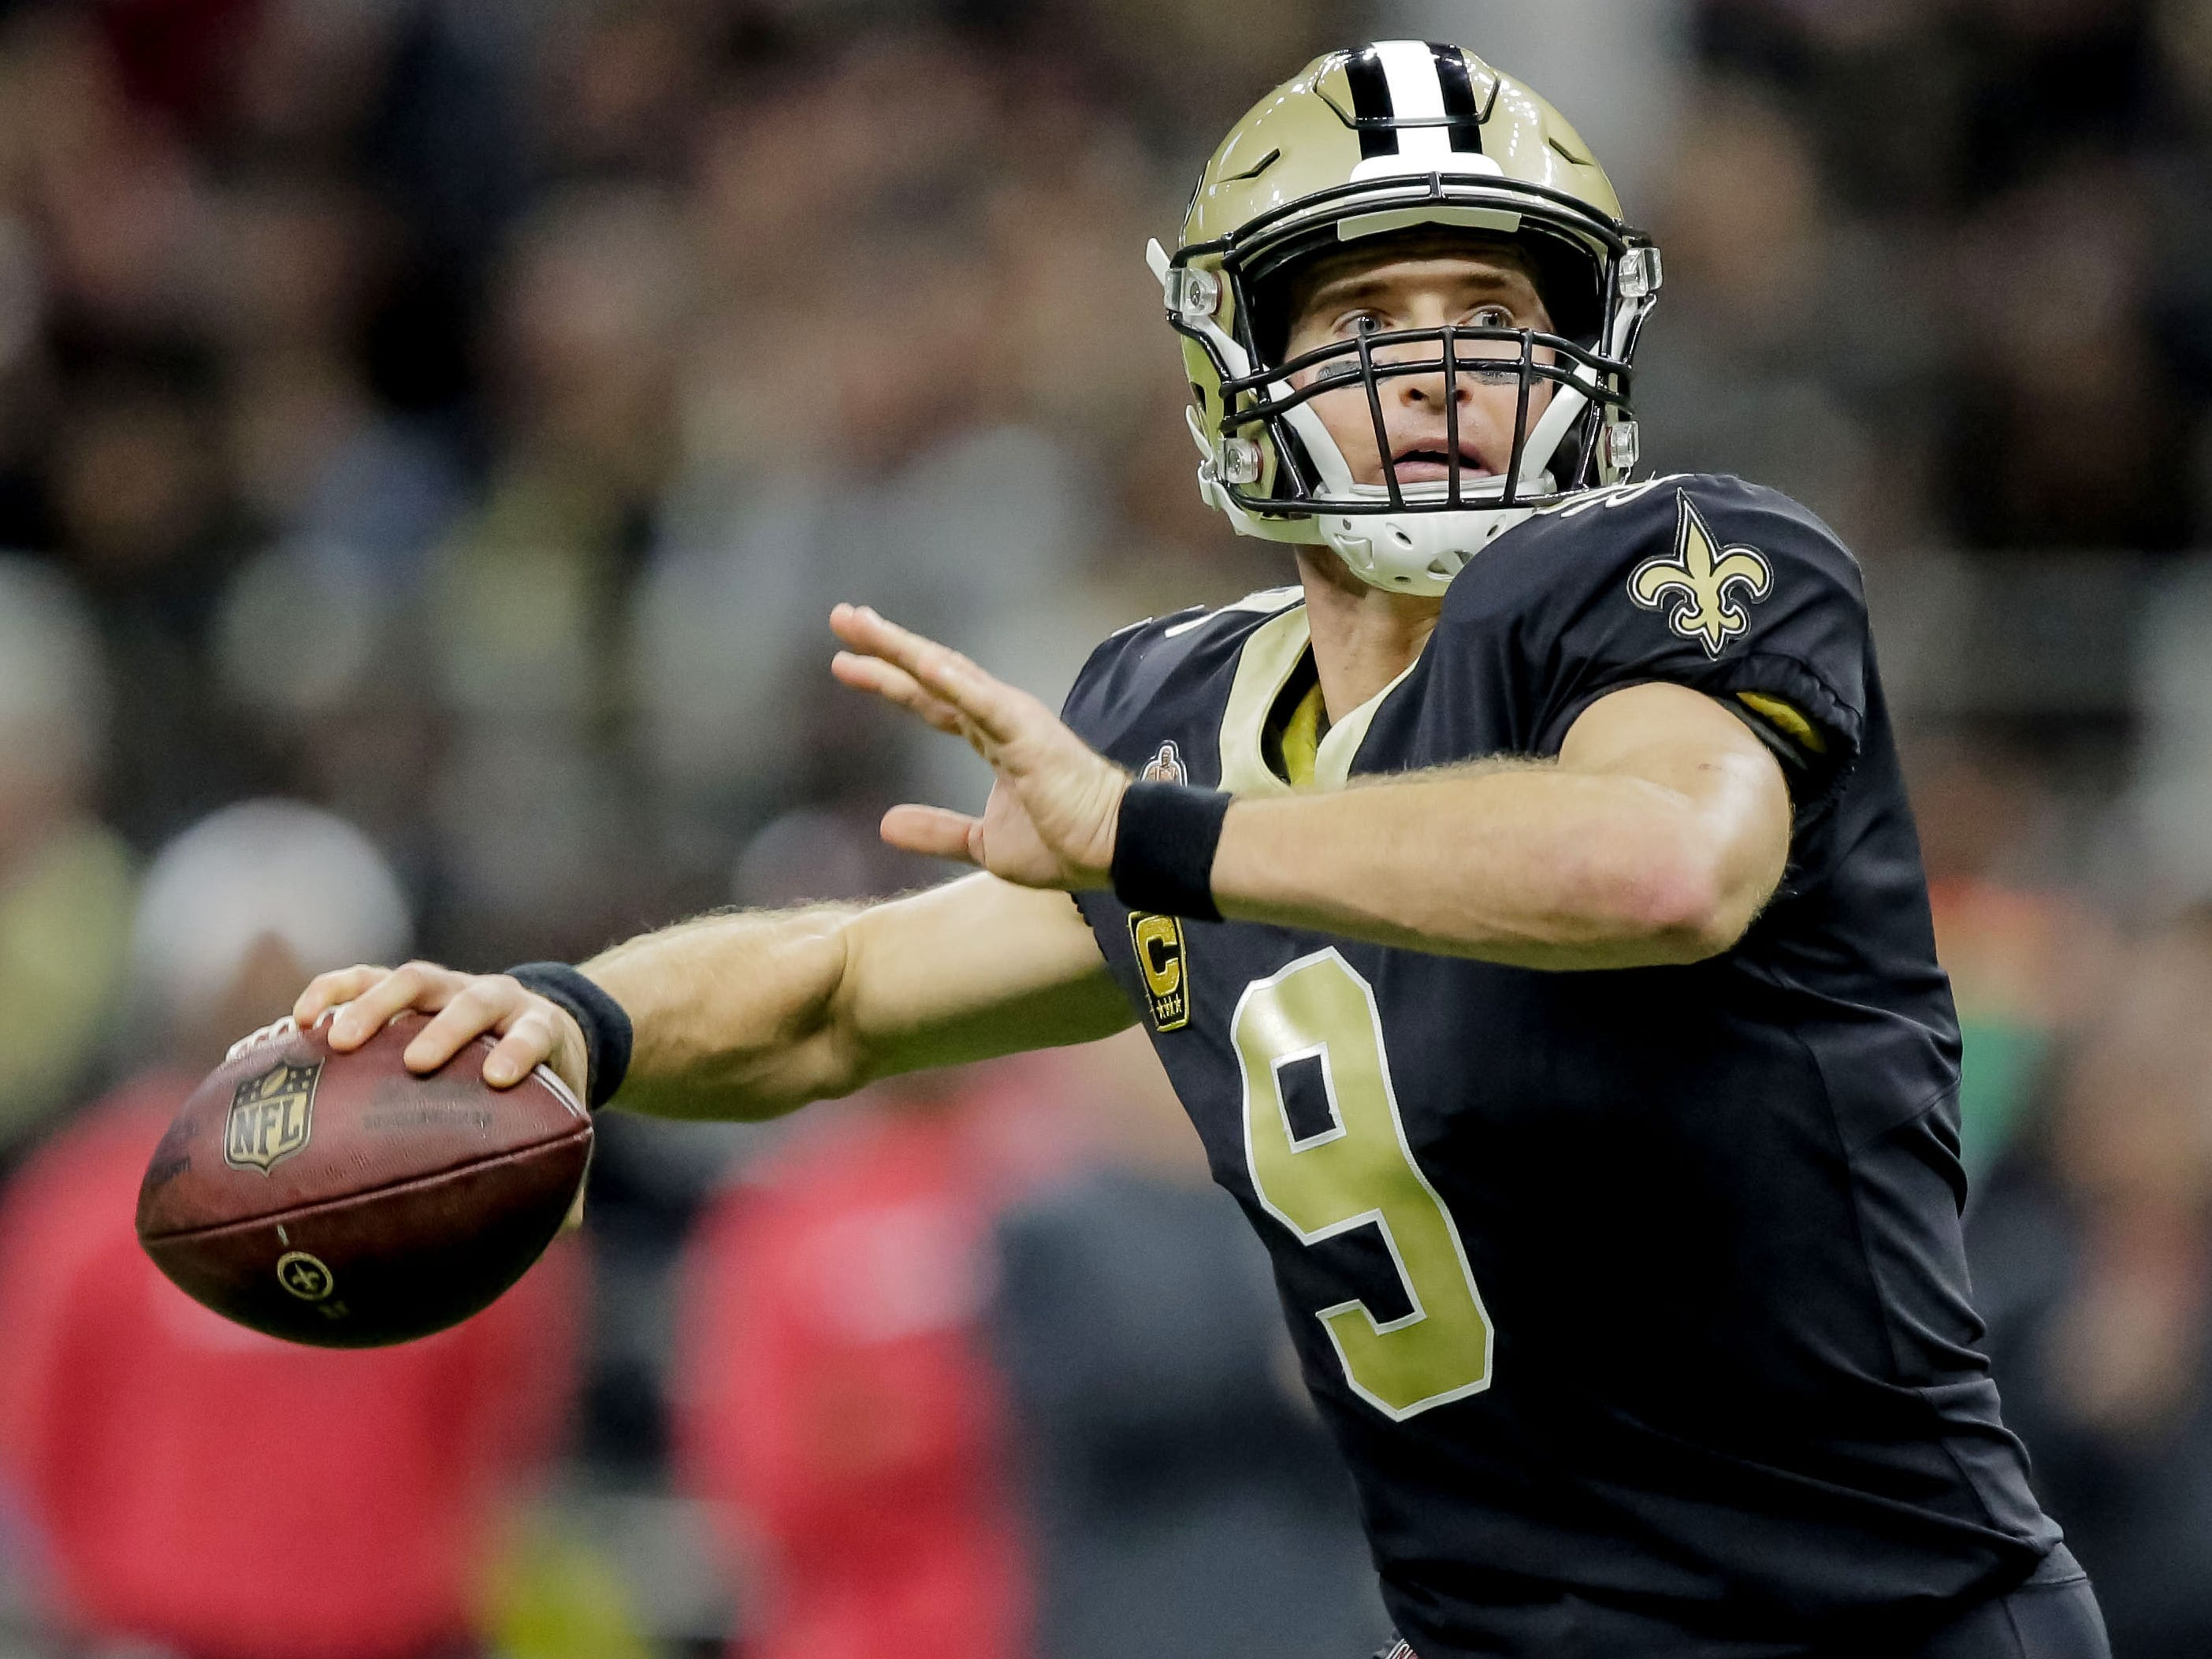 QB - Drew Brees, New Orleans Saints